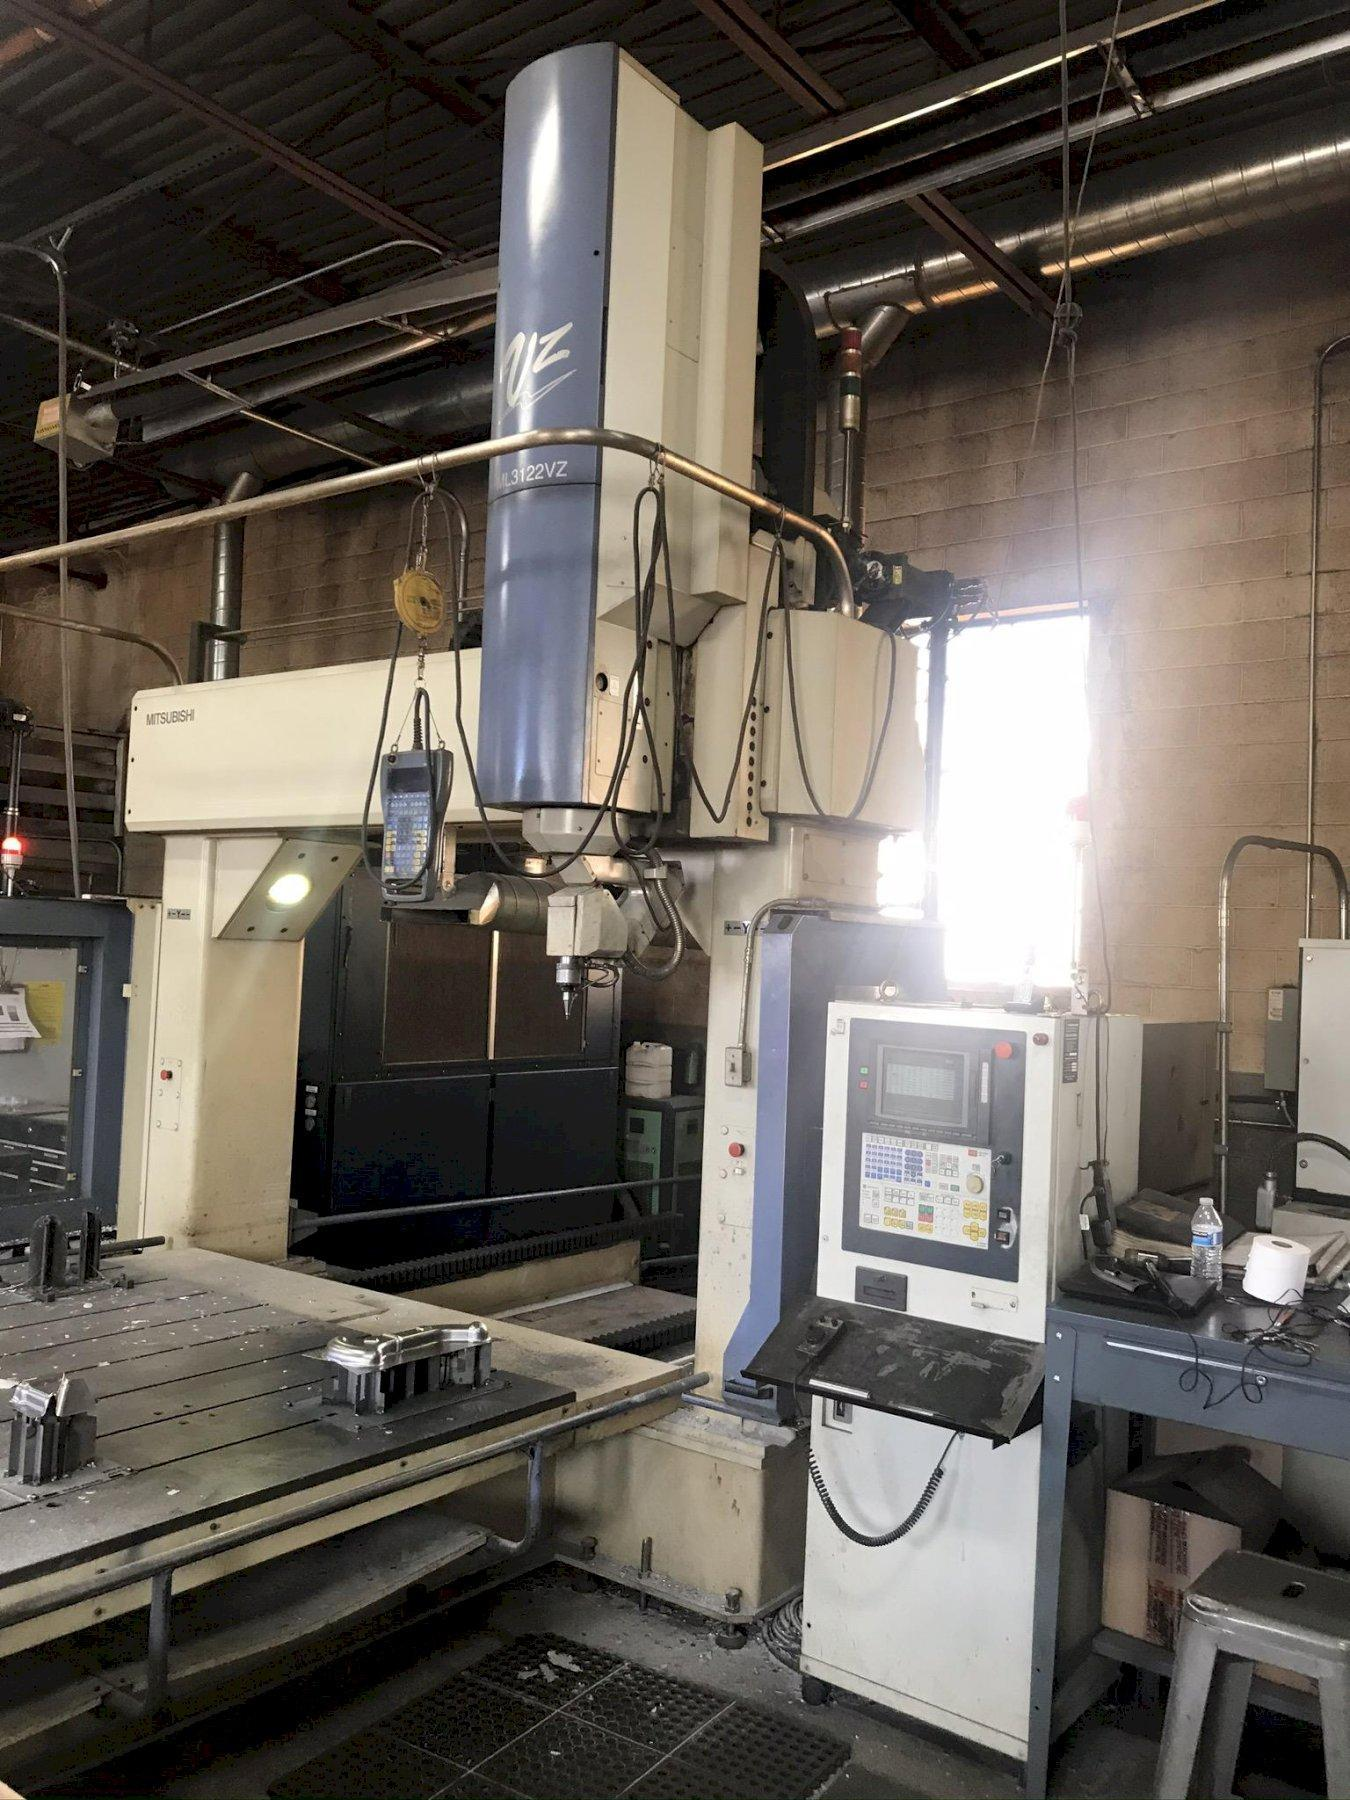 USED MITSUBISHI 5-AXIS CNC CO2 LASER MODEL ML3122 VZ (VZ1), Year 2001, Stock # 10718